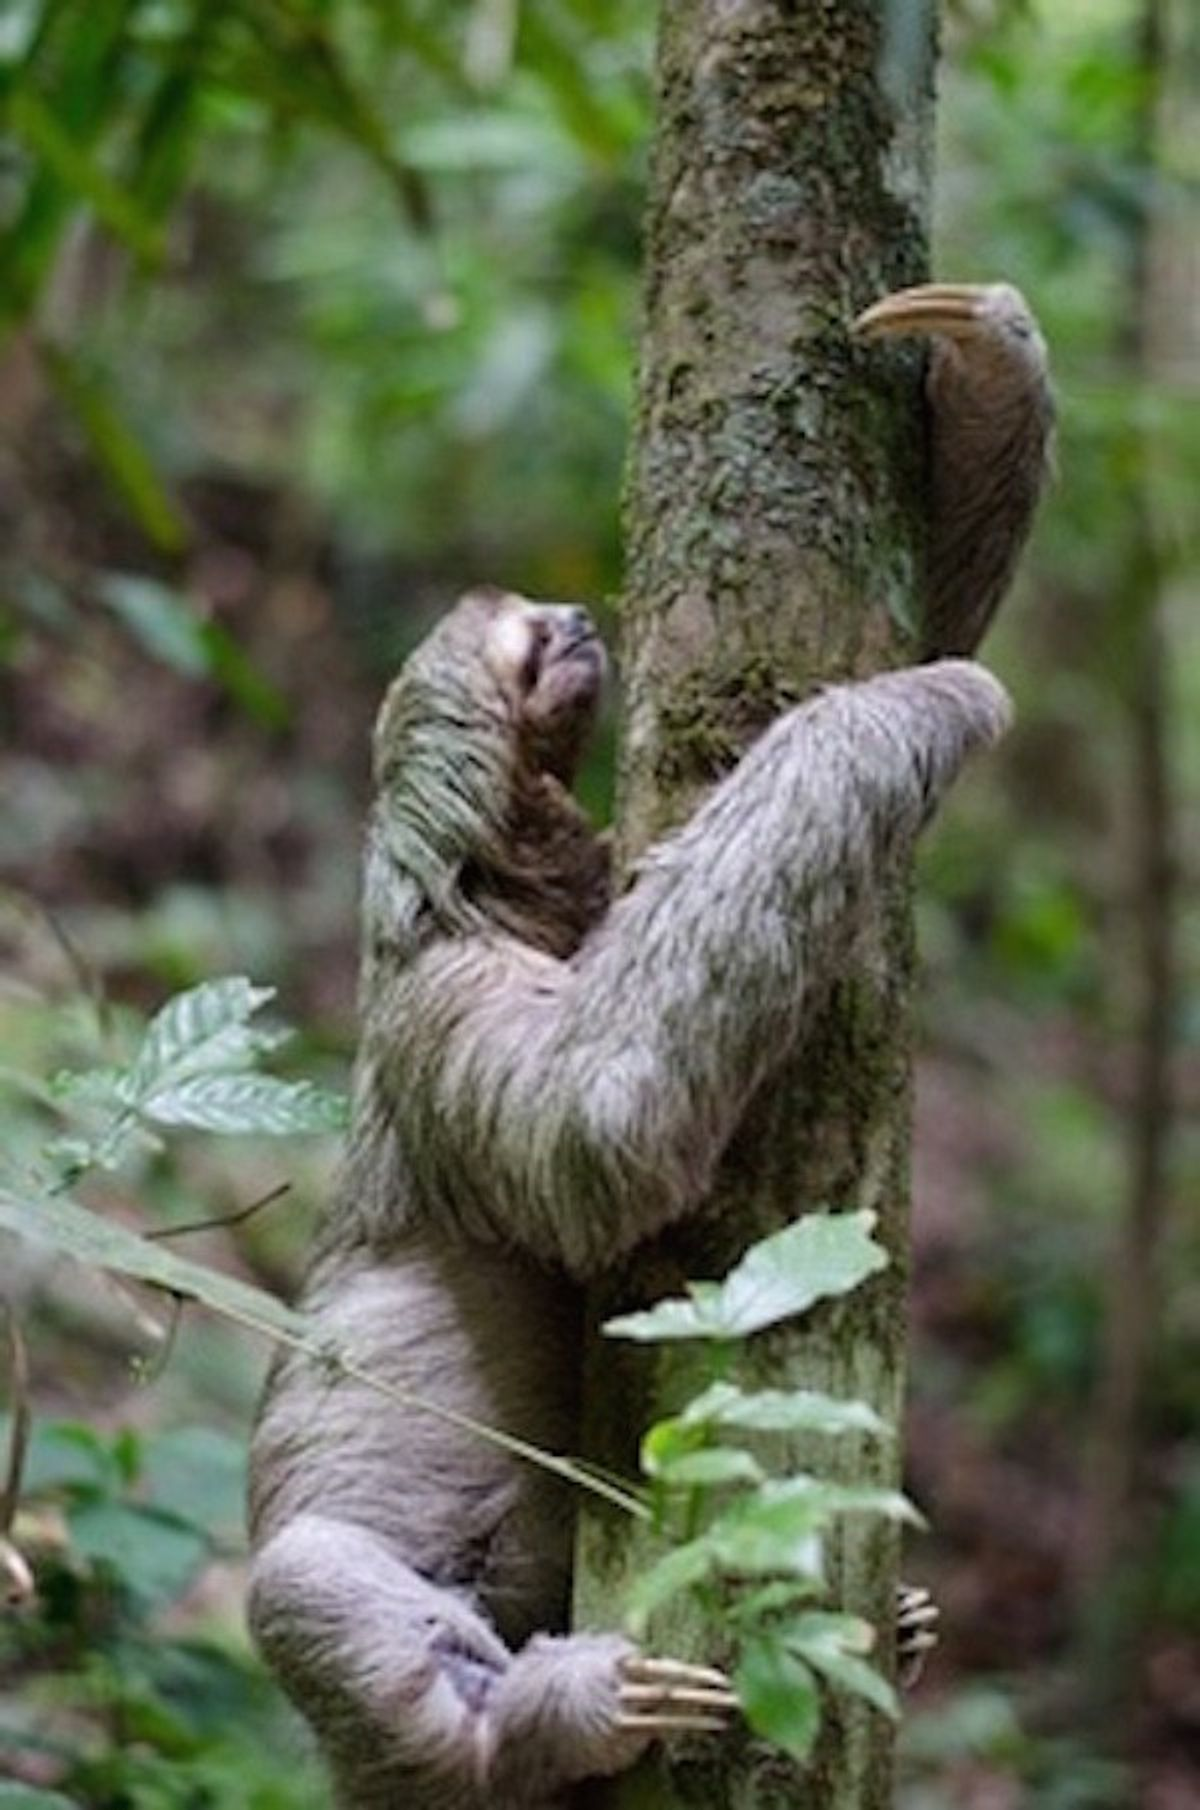 10 Reasons Why Sloths Are The Greatest Creatures in the World